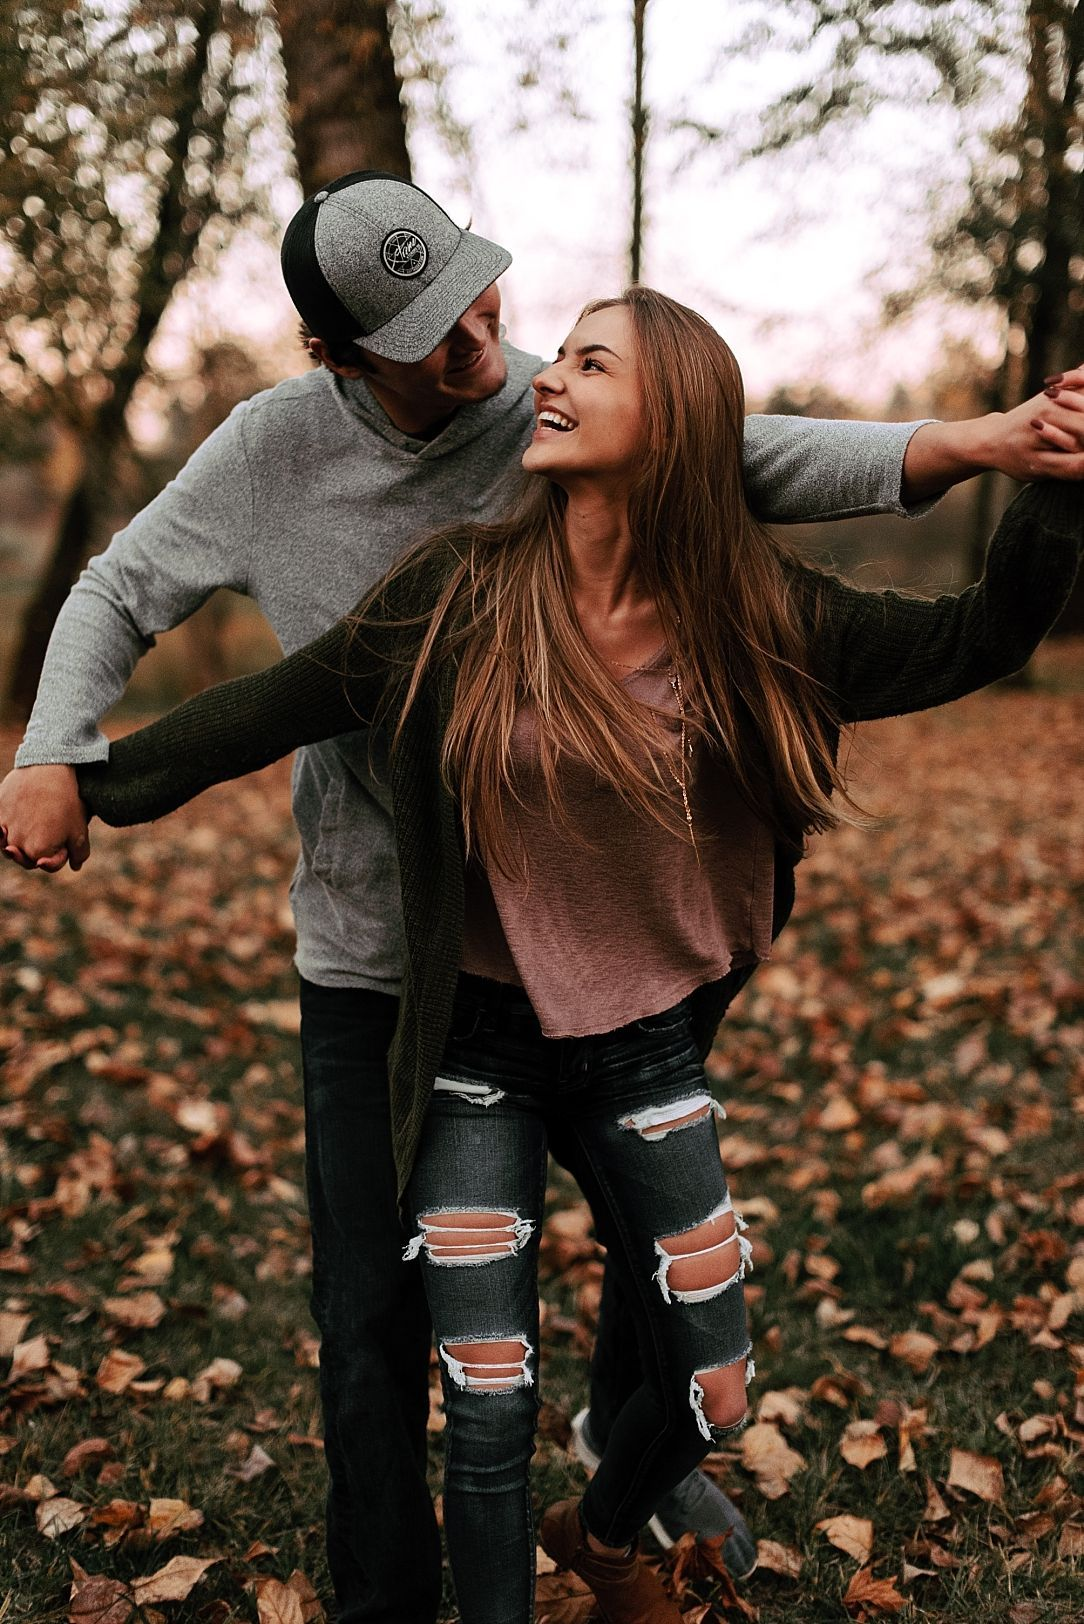 Playful Fall Couple Session Couplegoals Couple Photography Poses Couple Photoshoot Poses Couples Photography Poses Boyfriends